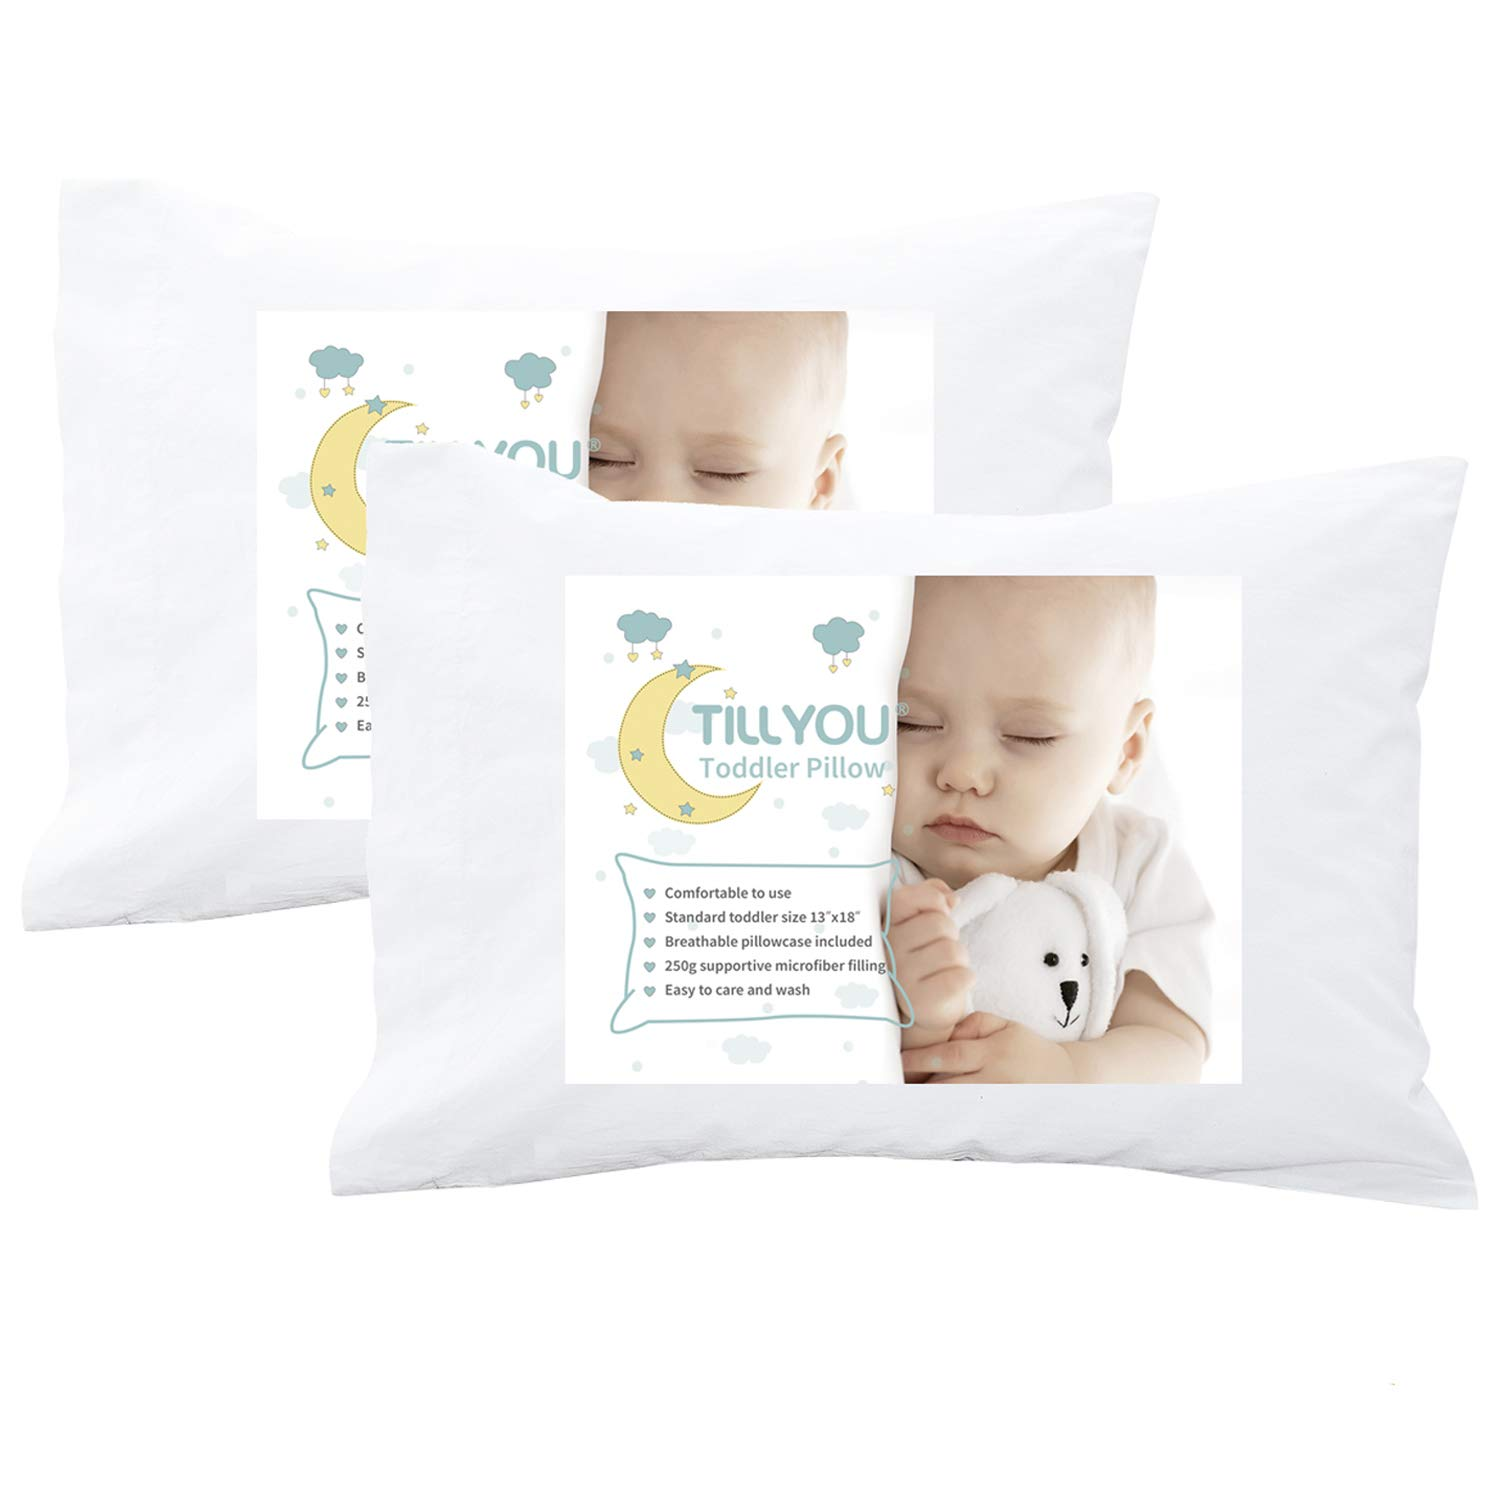 [Pack of 2] Hypoallergenic Toddler Travel Pillow with Pillowcase, 100% Soft Cotton Cases(2), Fits Toddler Bed/Baby Crib/Cot, Machine Washable Kids Pillows for Sleeping Napping, Child Size 13x18, White by TILLYOU